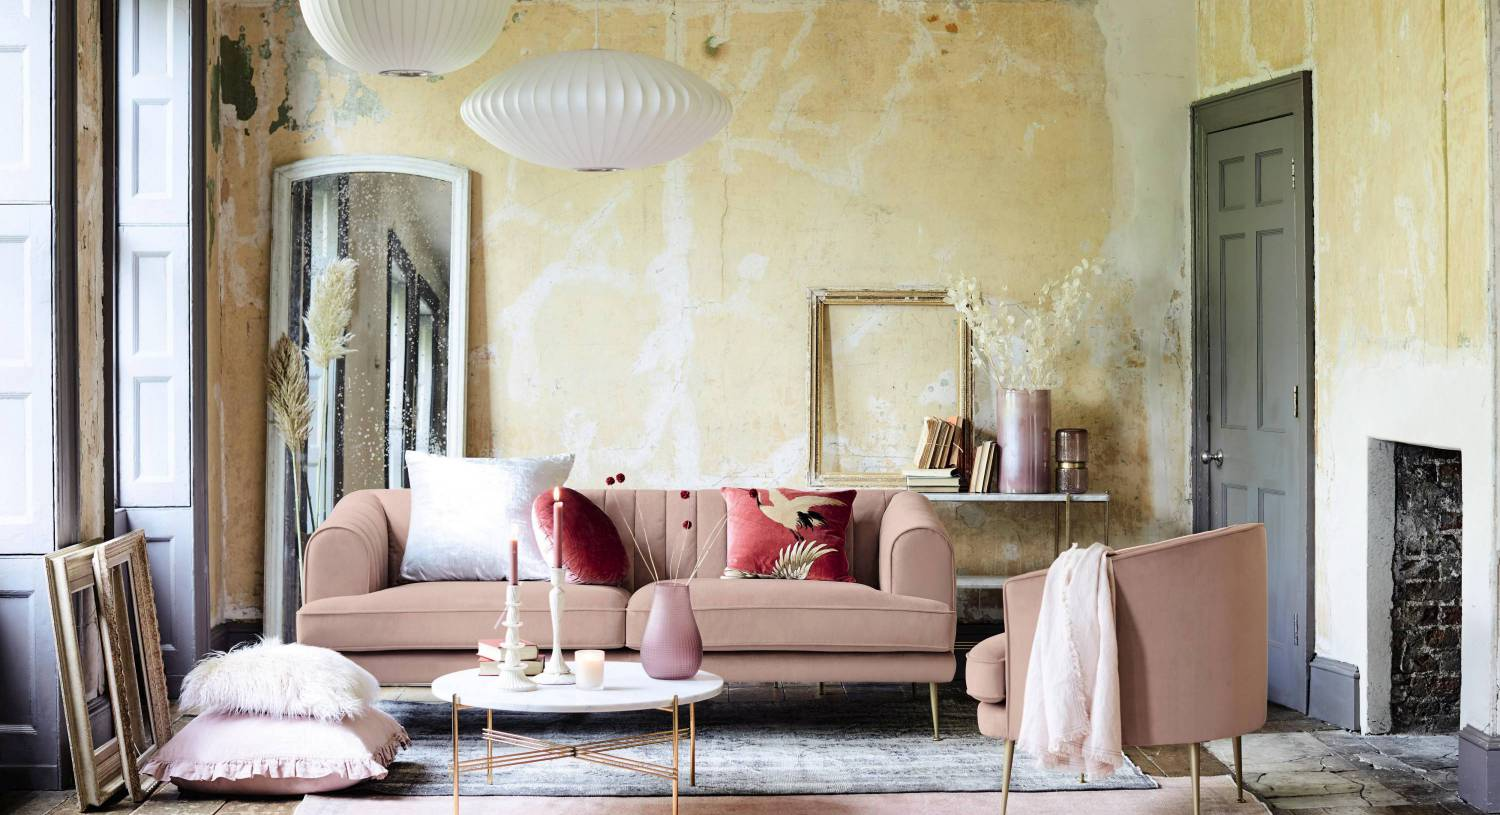 More time at home offers a chance to consider how we buy for our interiors